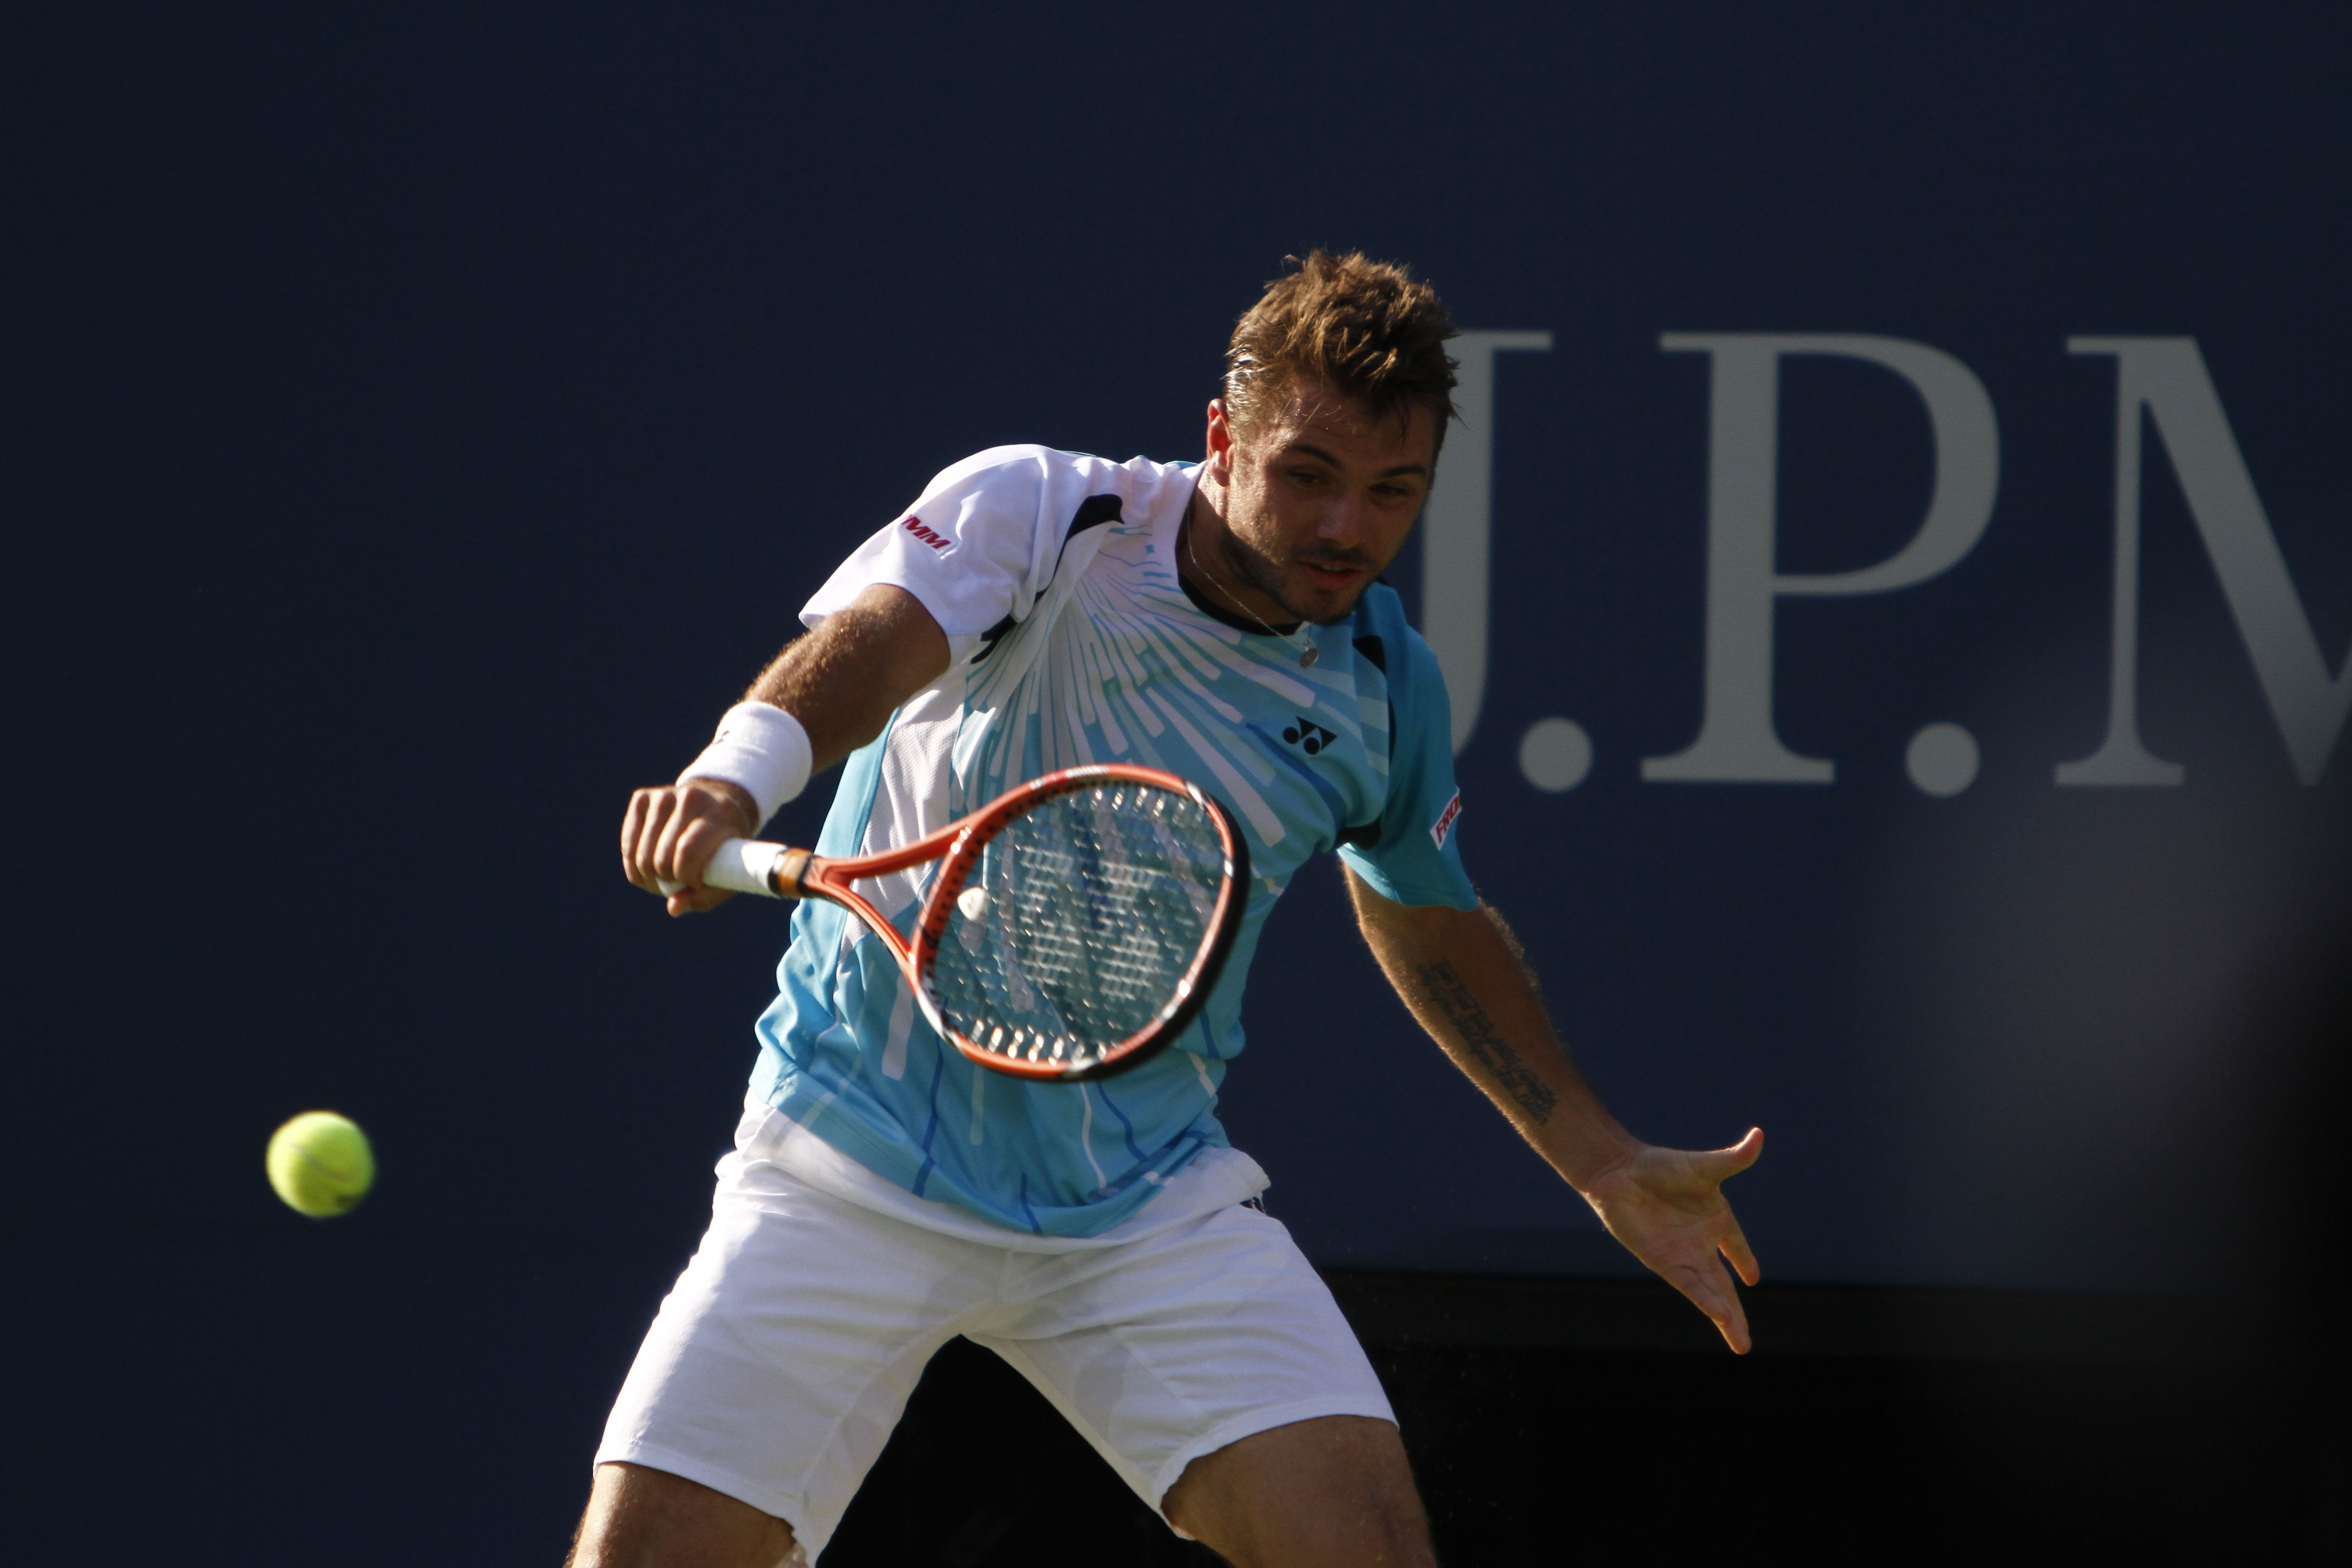 Stan Wawrinka won his opening match in straight sets over